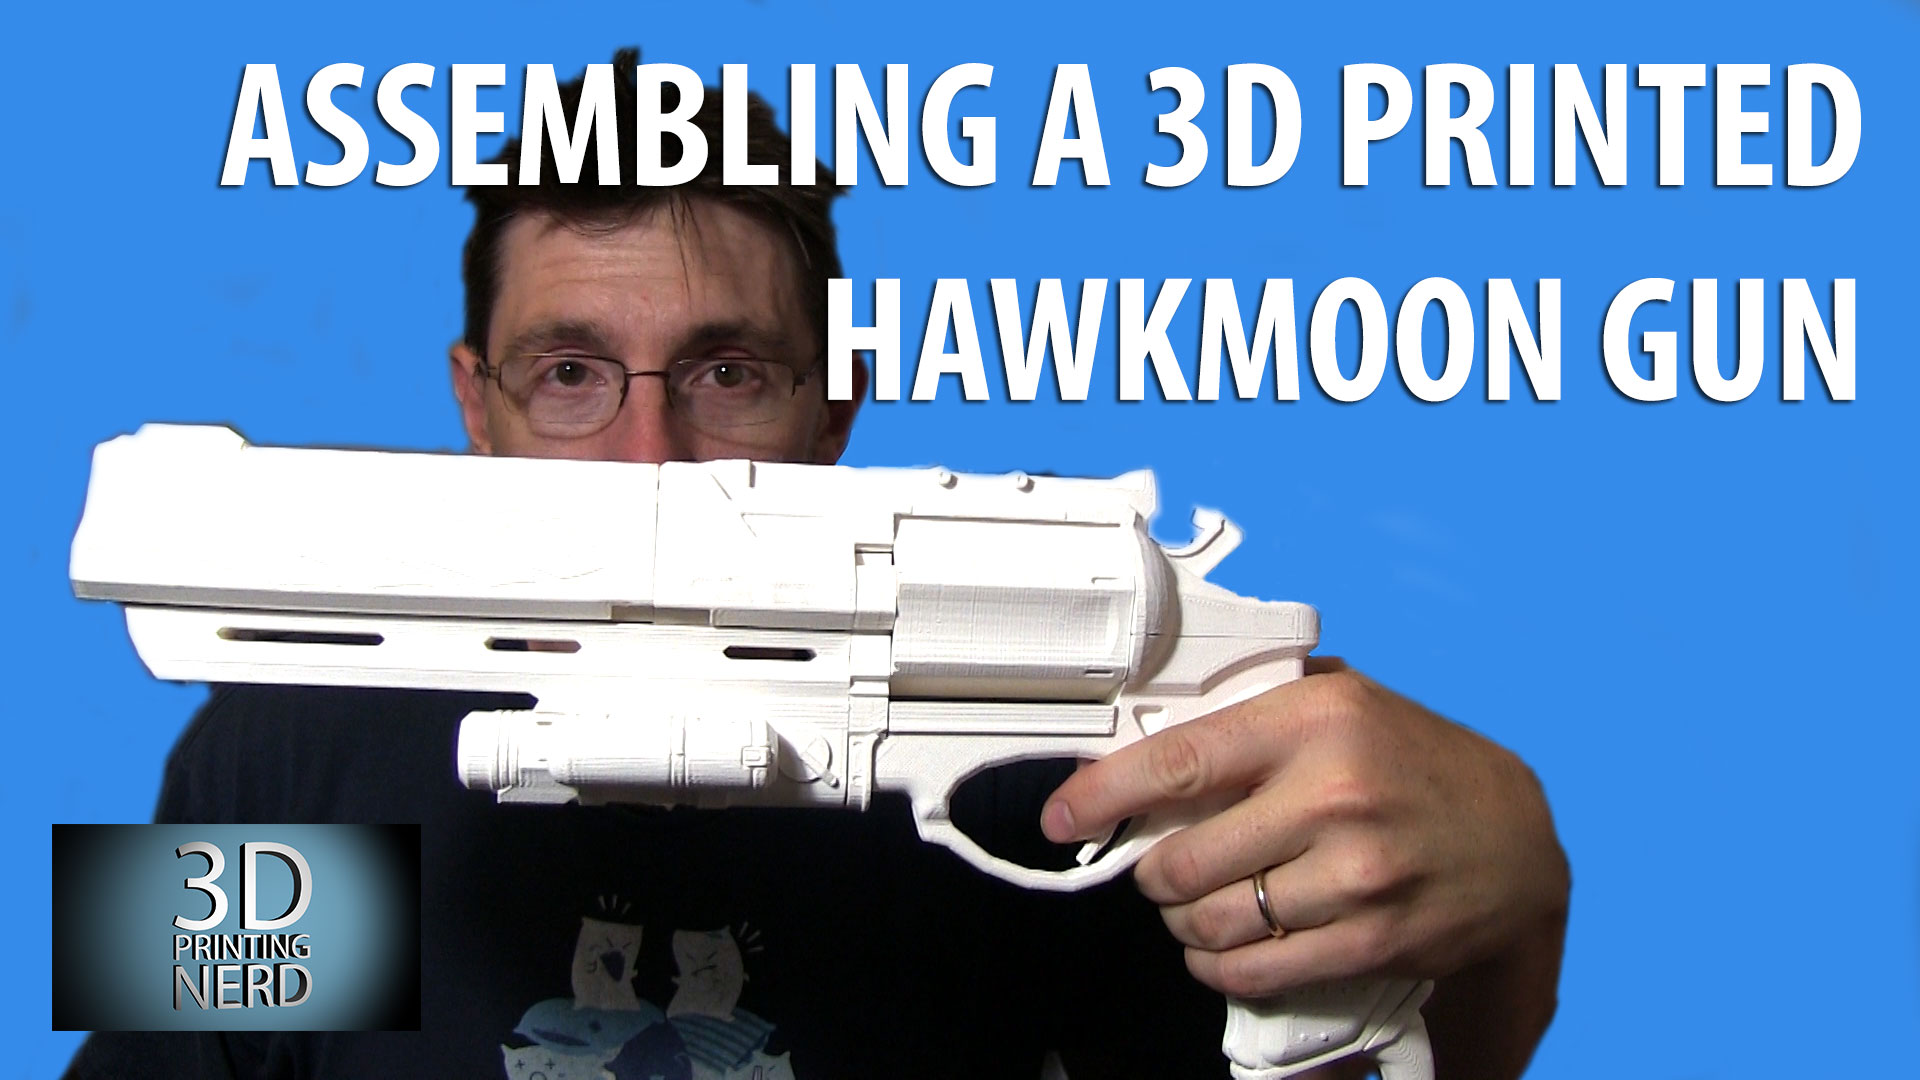 Assembling a 3D printed gun – the Hawkmoon from Destiny